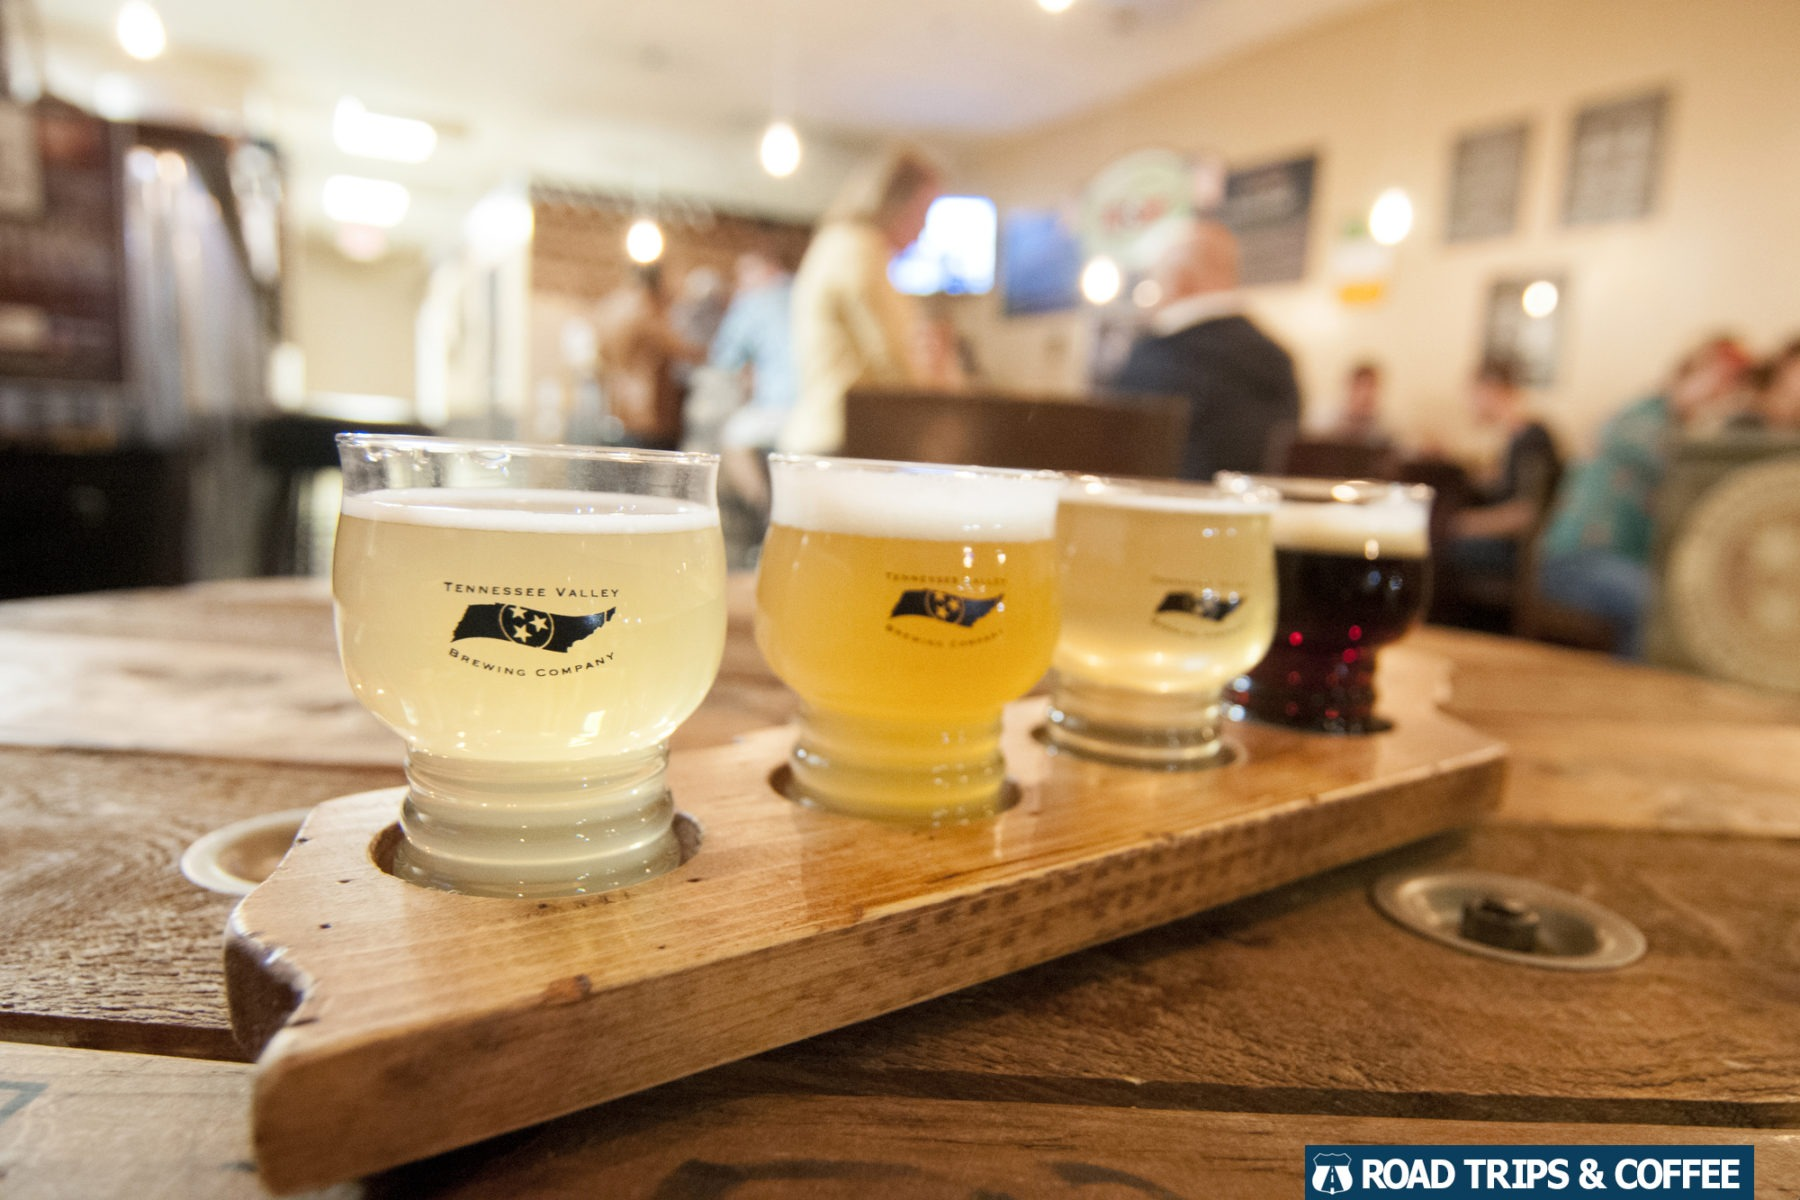 A flight of four craft beers from the Tennessee Valley Brewing Company in Clarksville, Tennessee